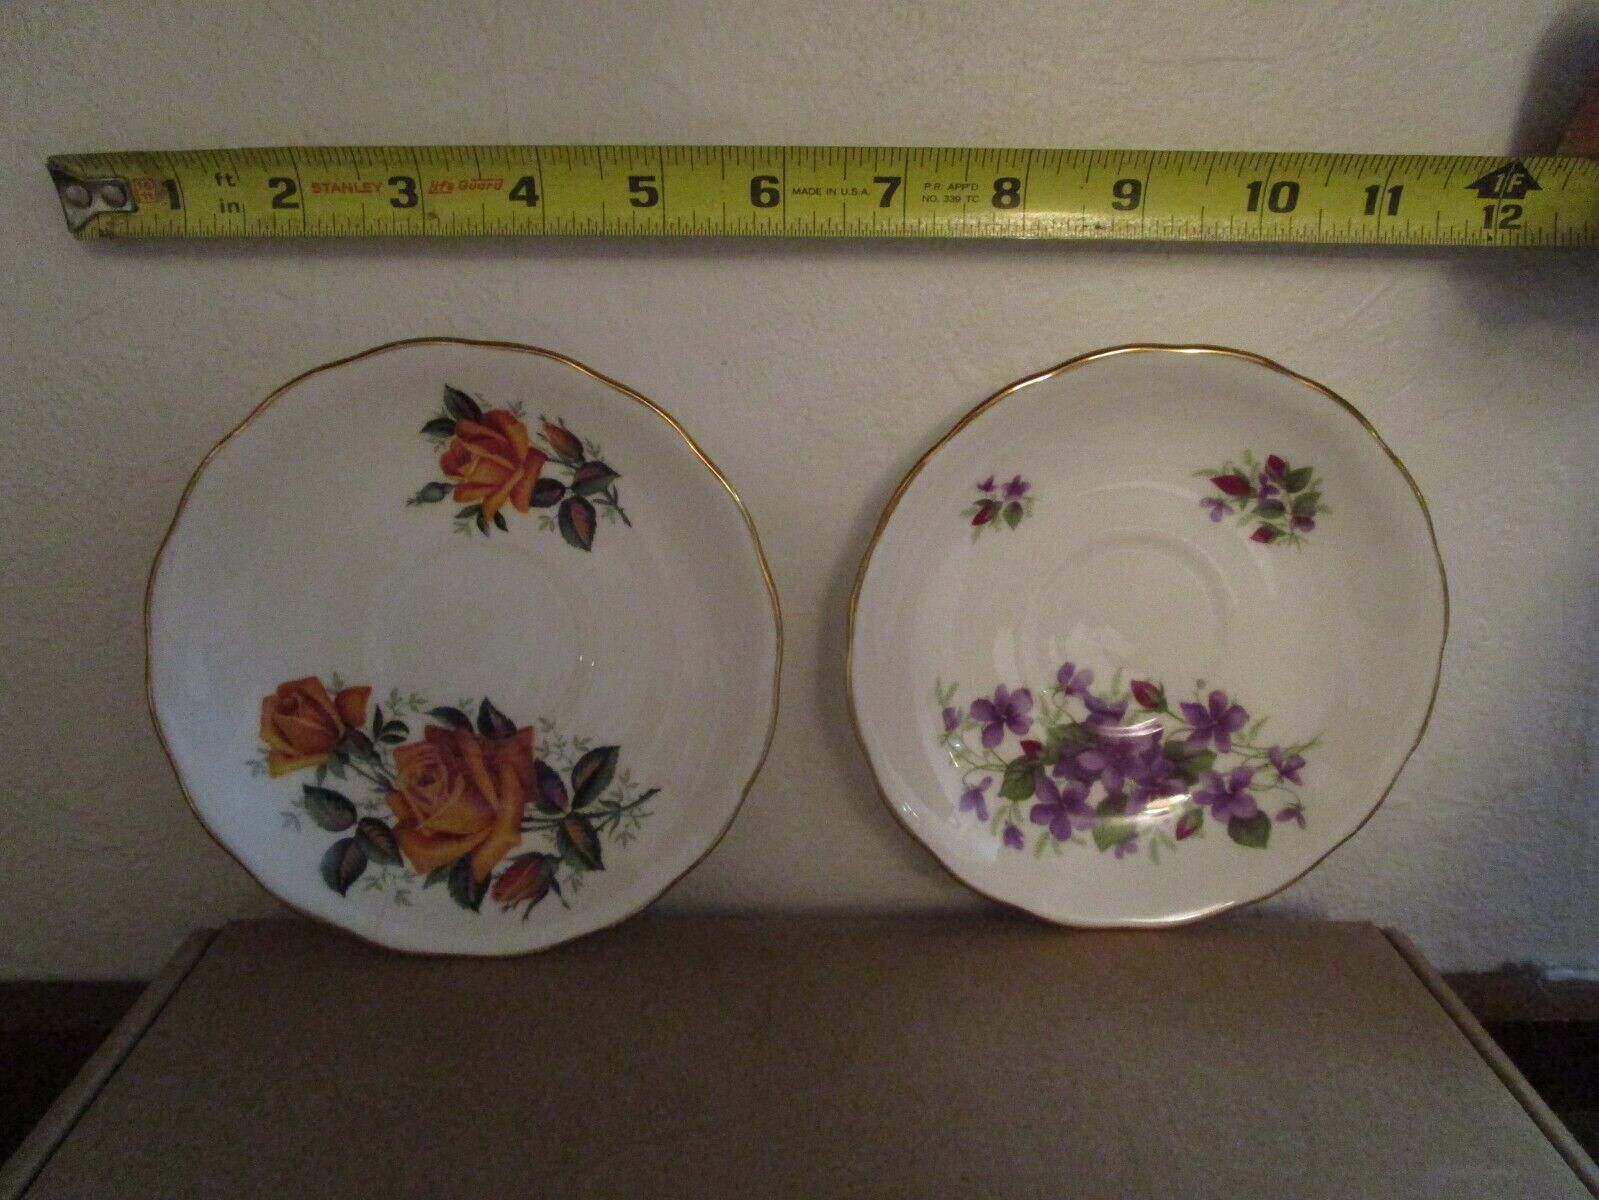 2 - Colclough Bone China 5 Small Plate / Saucer Made In England Flower Pattern  - $10.00